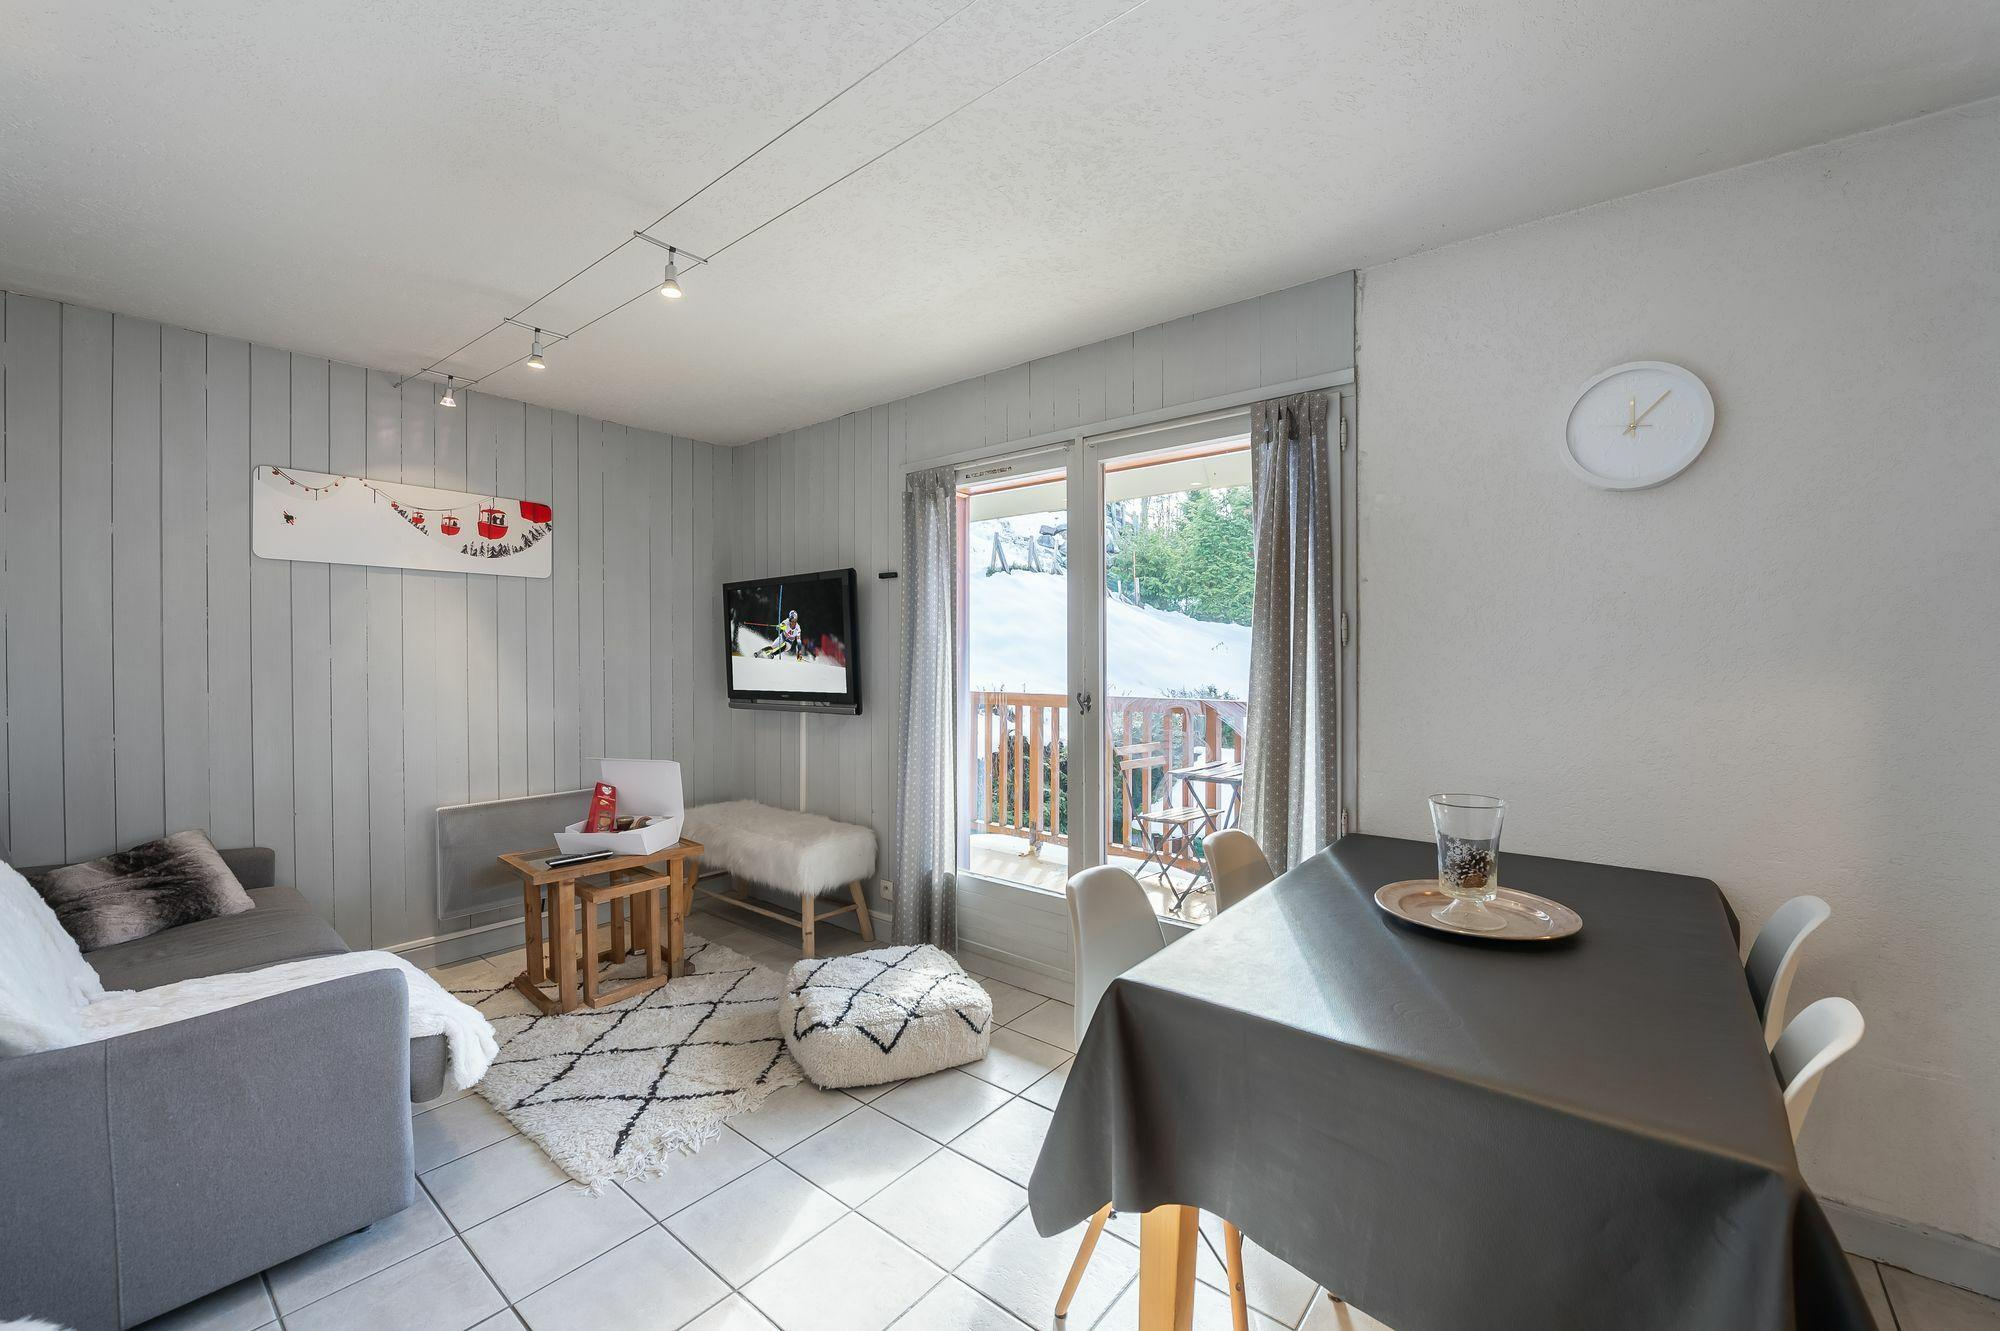 Le Fogal Accommodation in Megeve